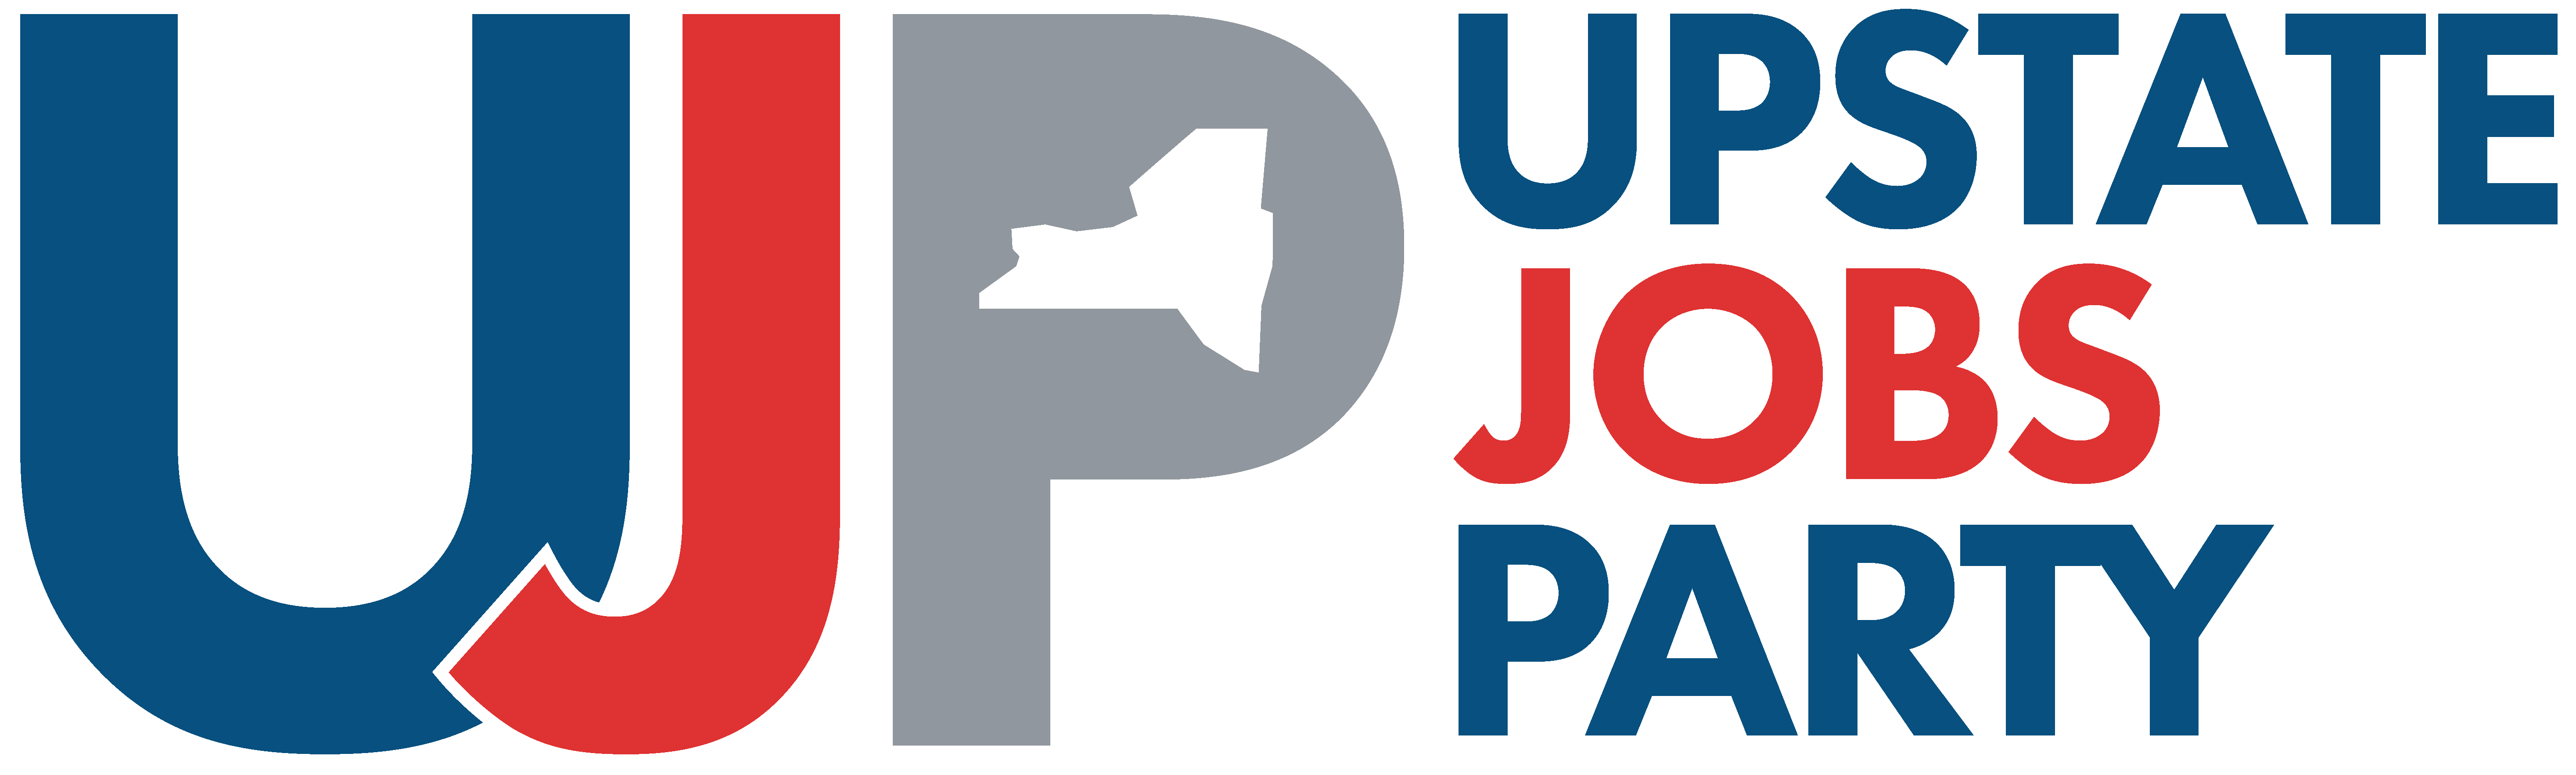 Upstate Jobs Party Endorses Keith Wofford for Attorney General